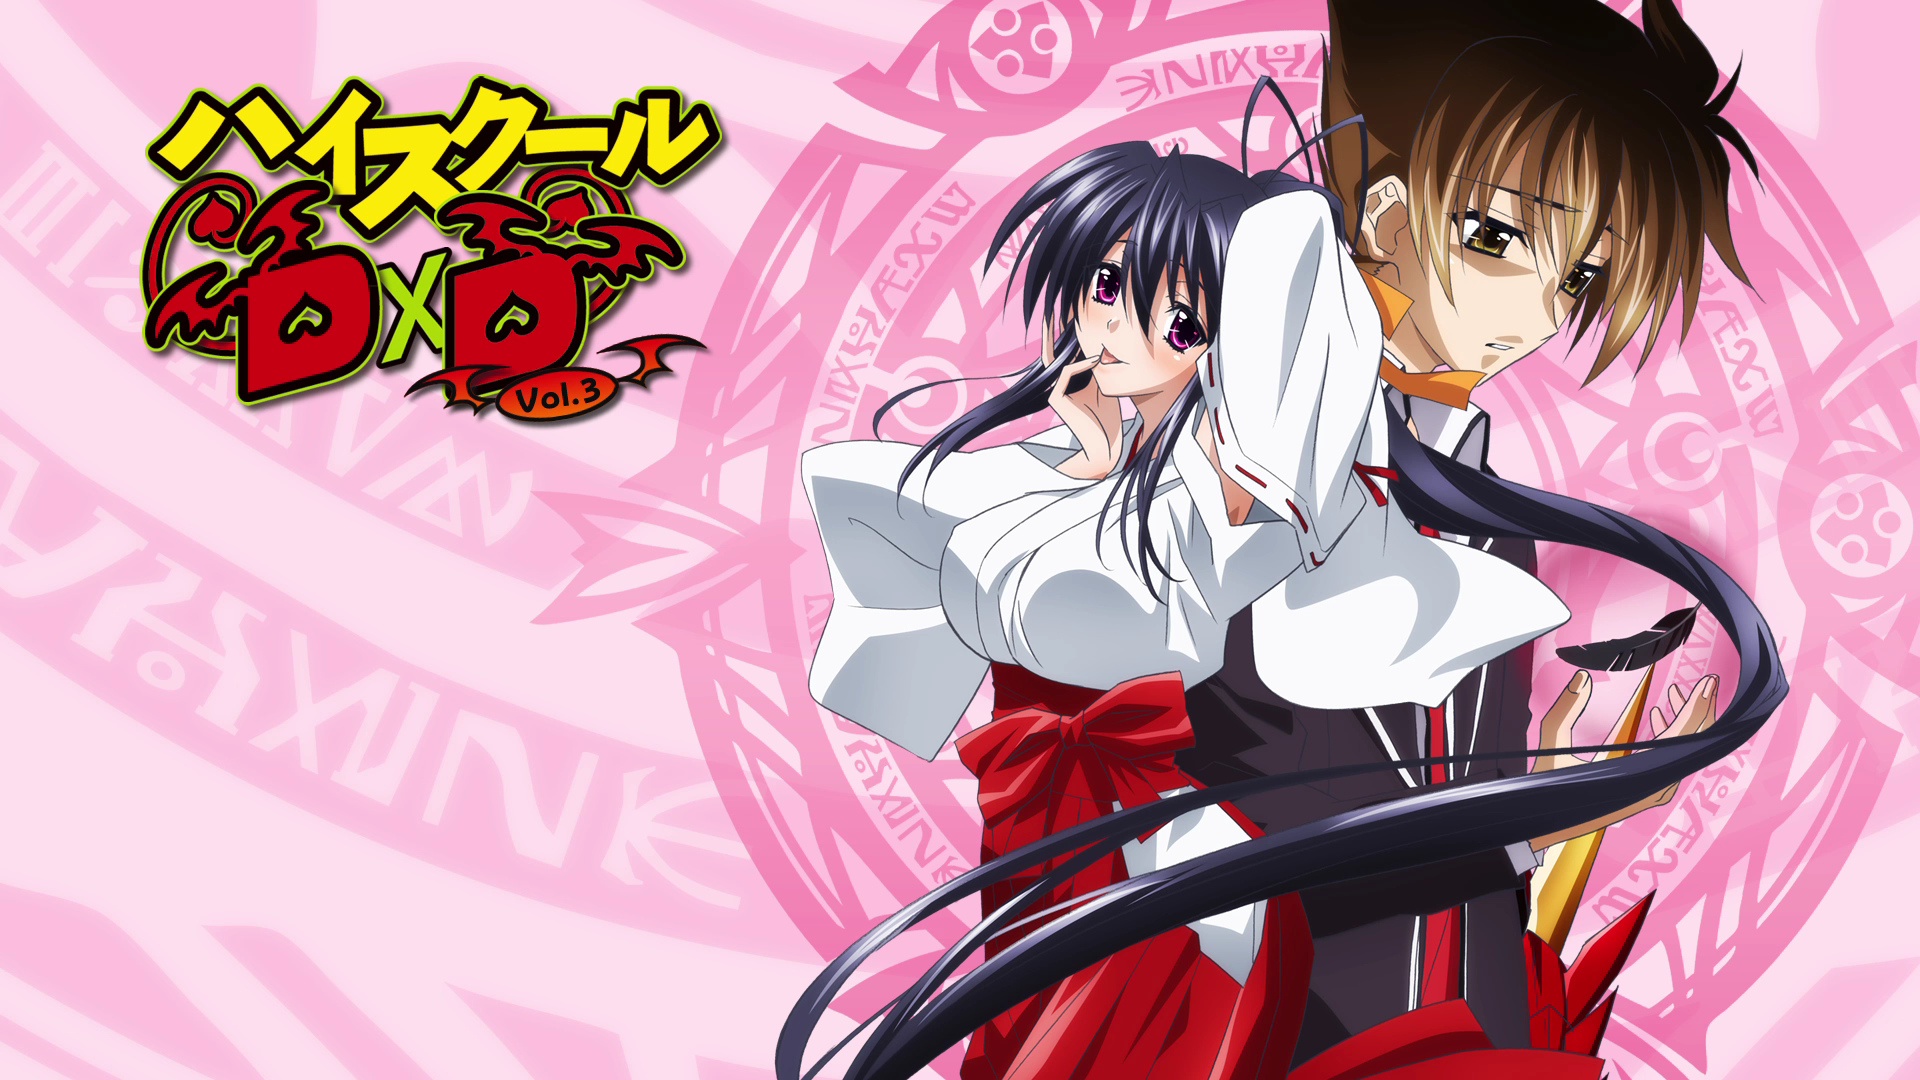 Pictures High School Dxd Girls Anime 1920x1080